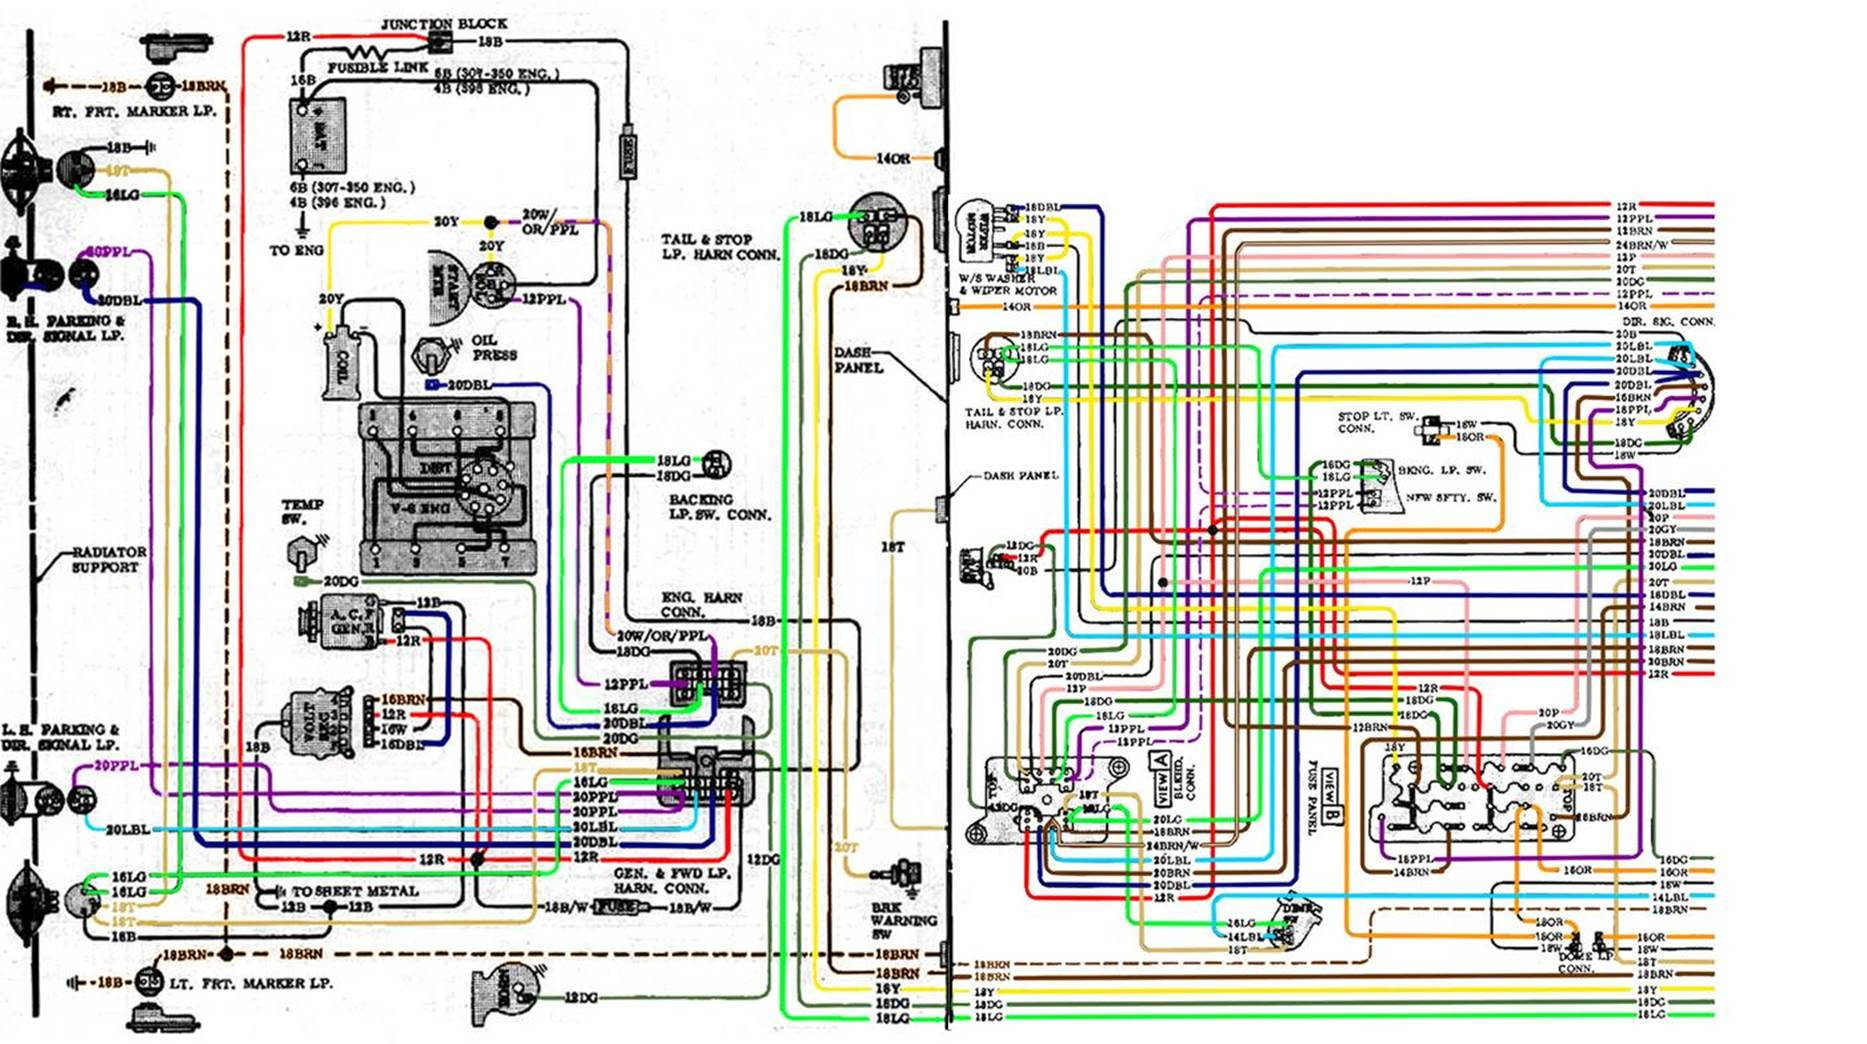 image002 67 72 chevy wiring diagram 1970 chevy c10 wiring harness at readyjetset.co